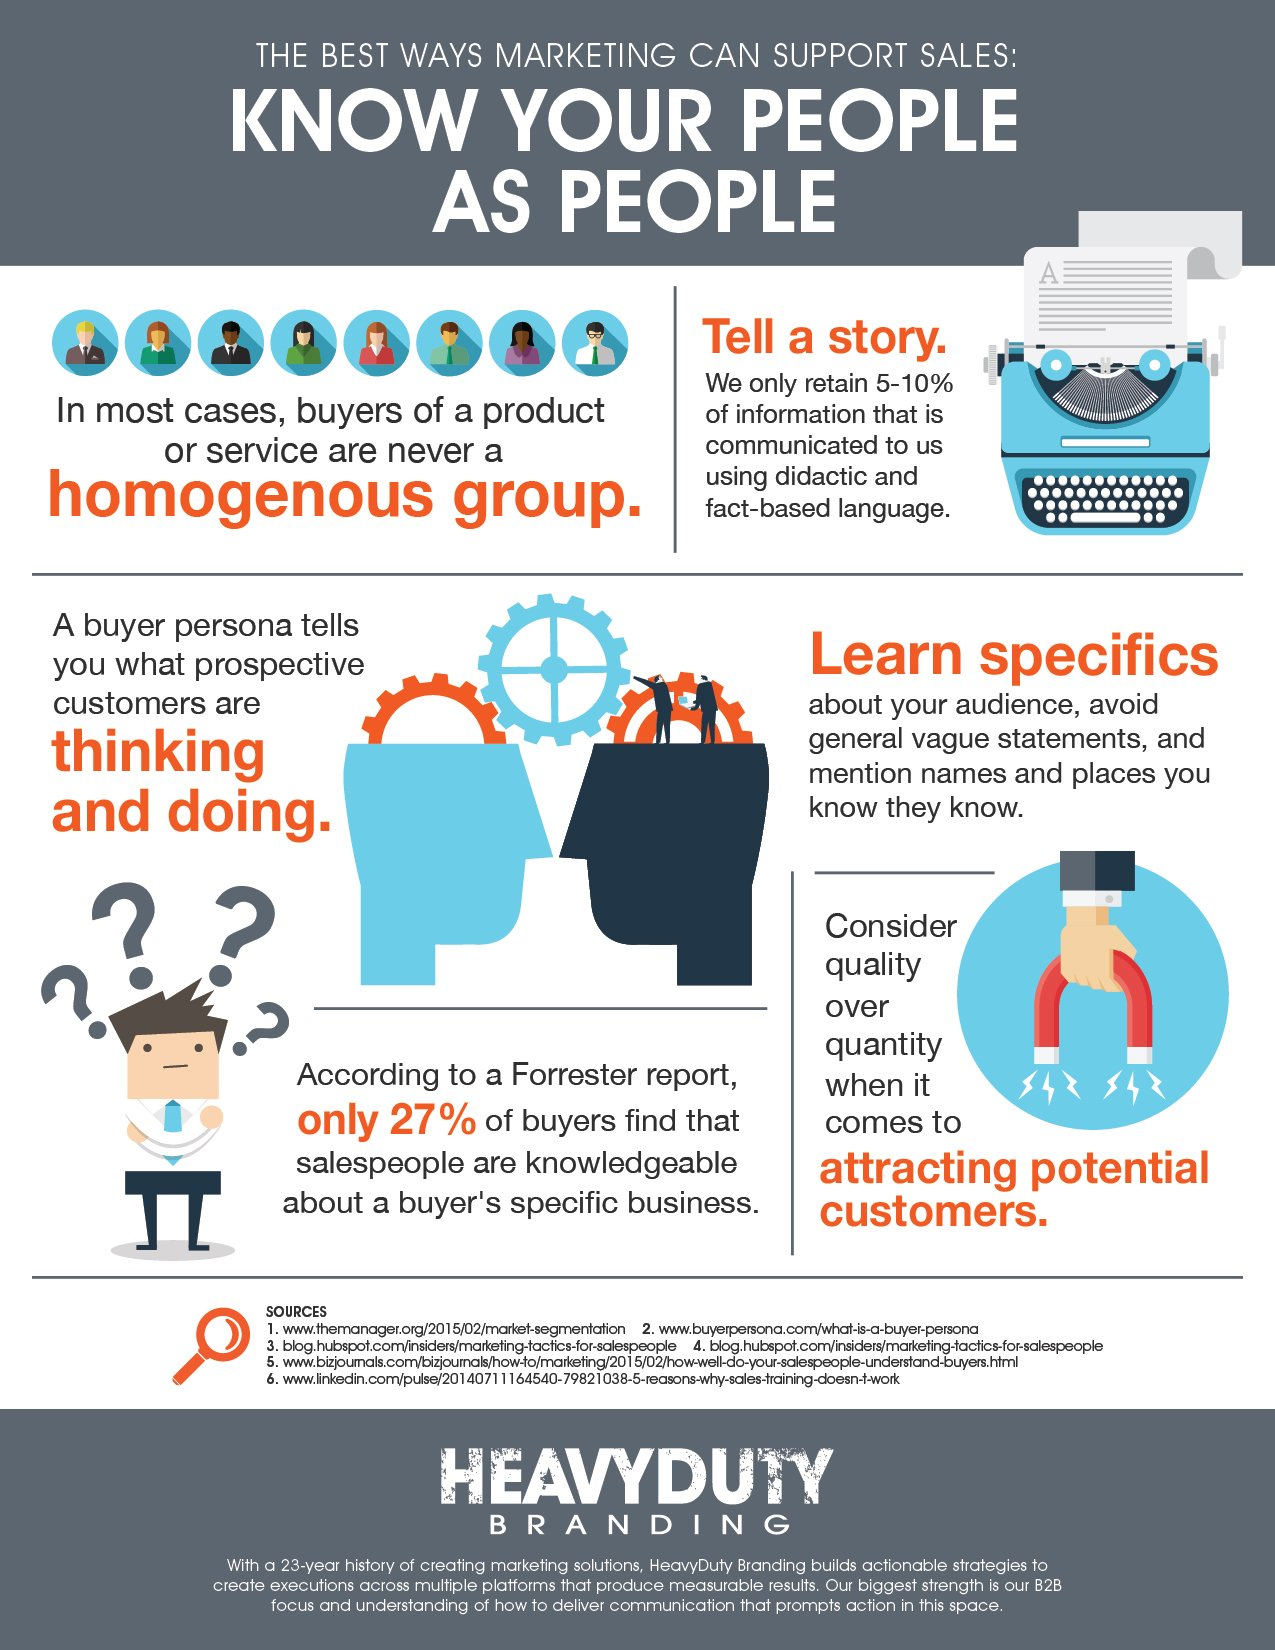 infographic with statistics regarding the best ways marketing can support sales by knowing your people